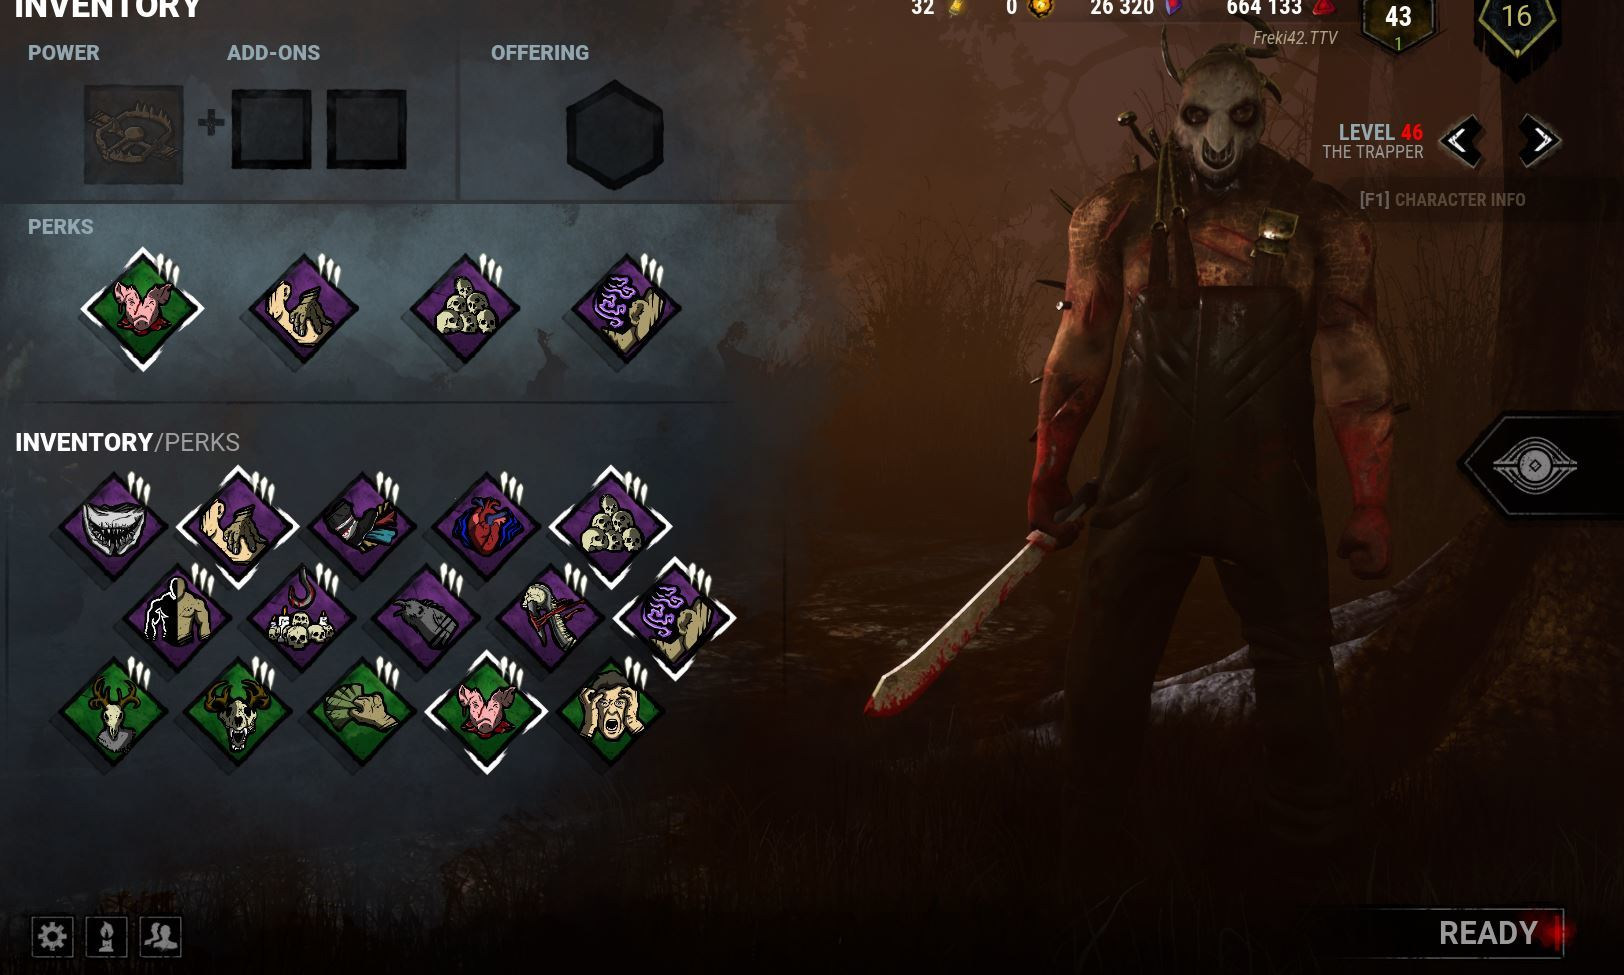 inventory screen shows only one page of all rank 3 perks  though i don't remember them all being rank 3.JPG